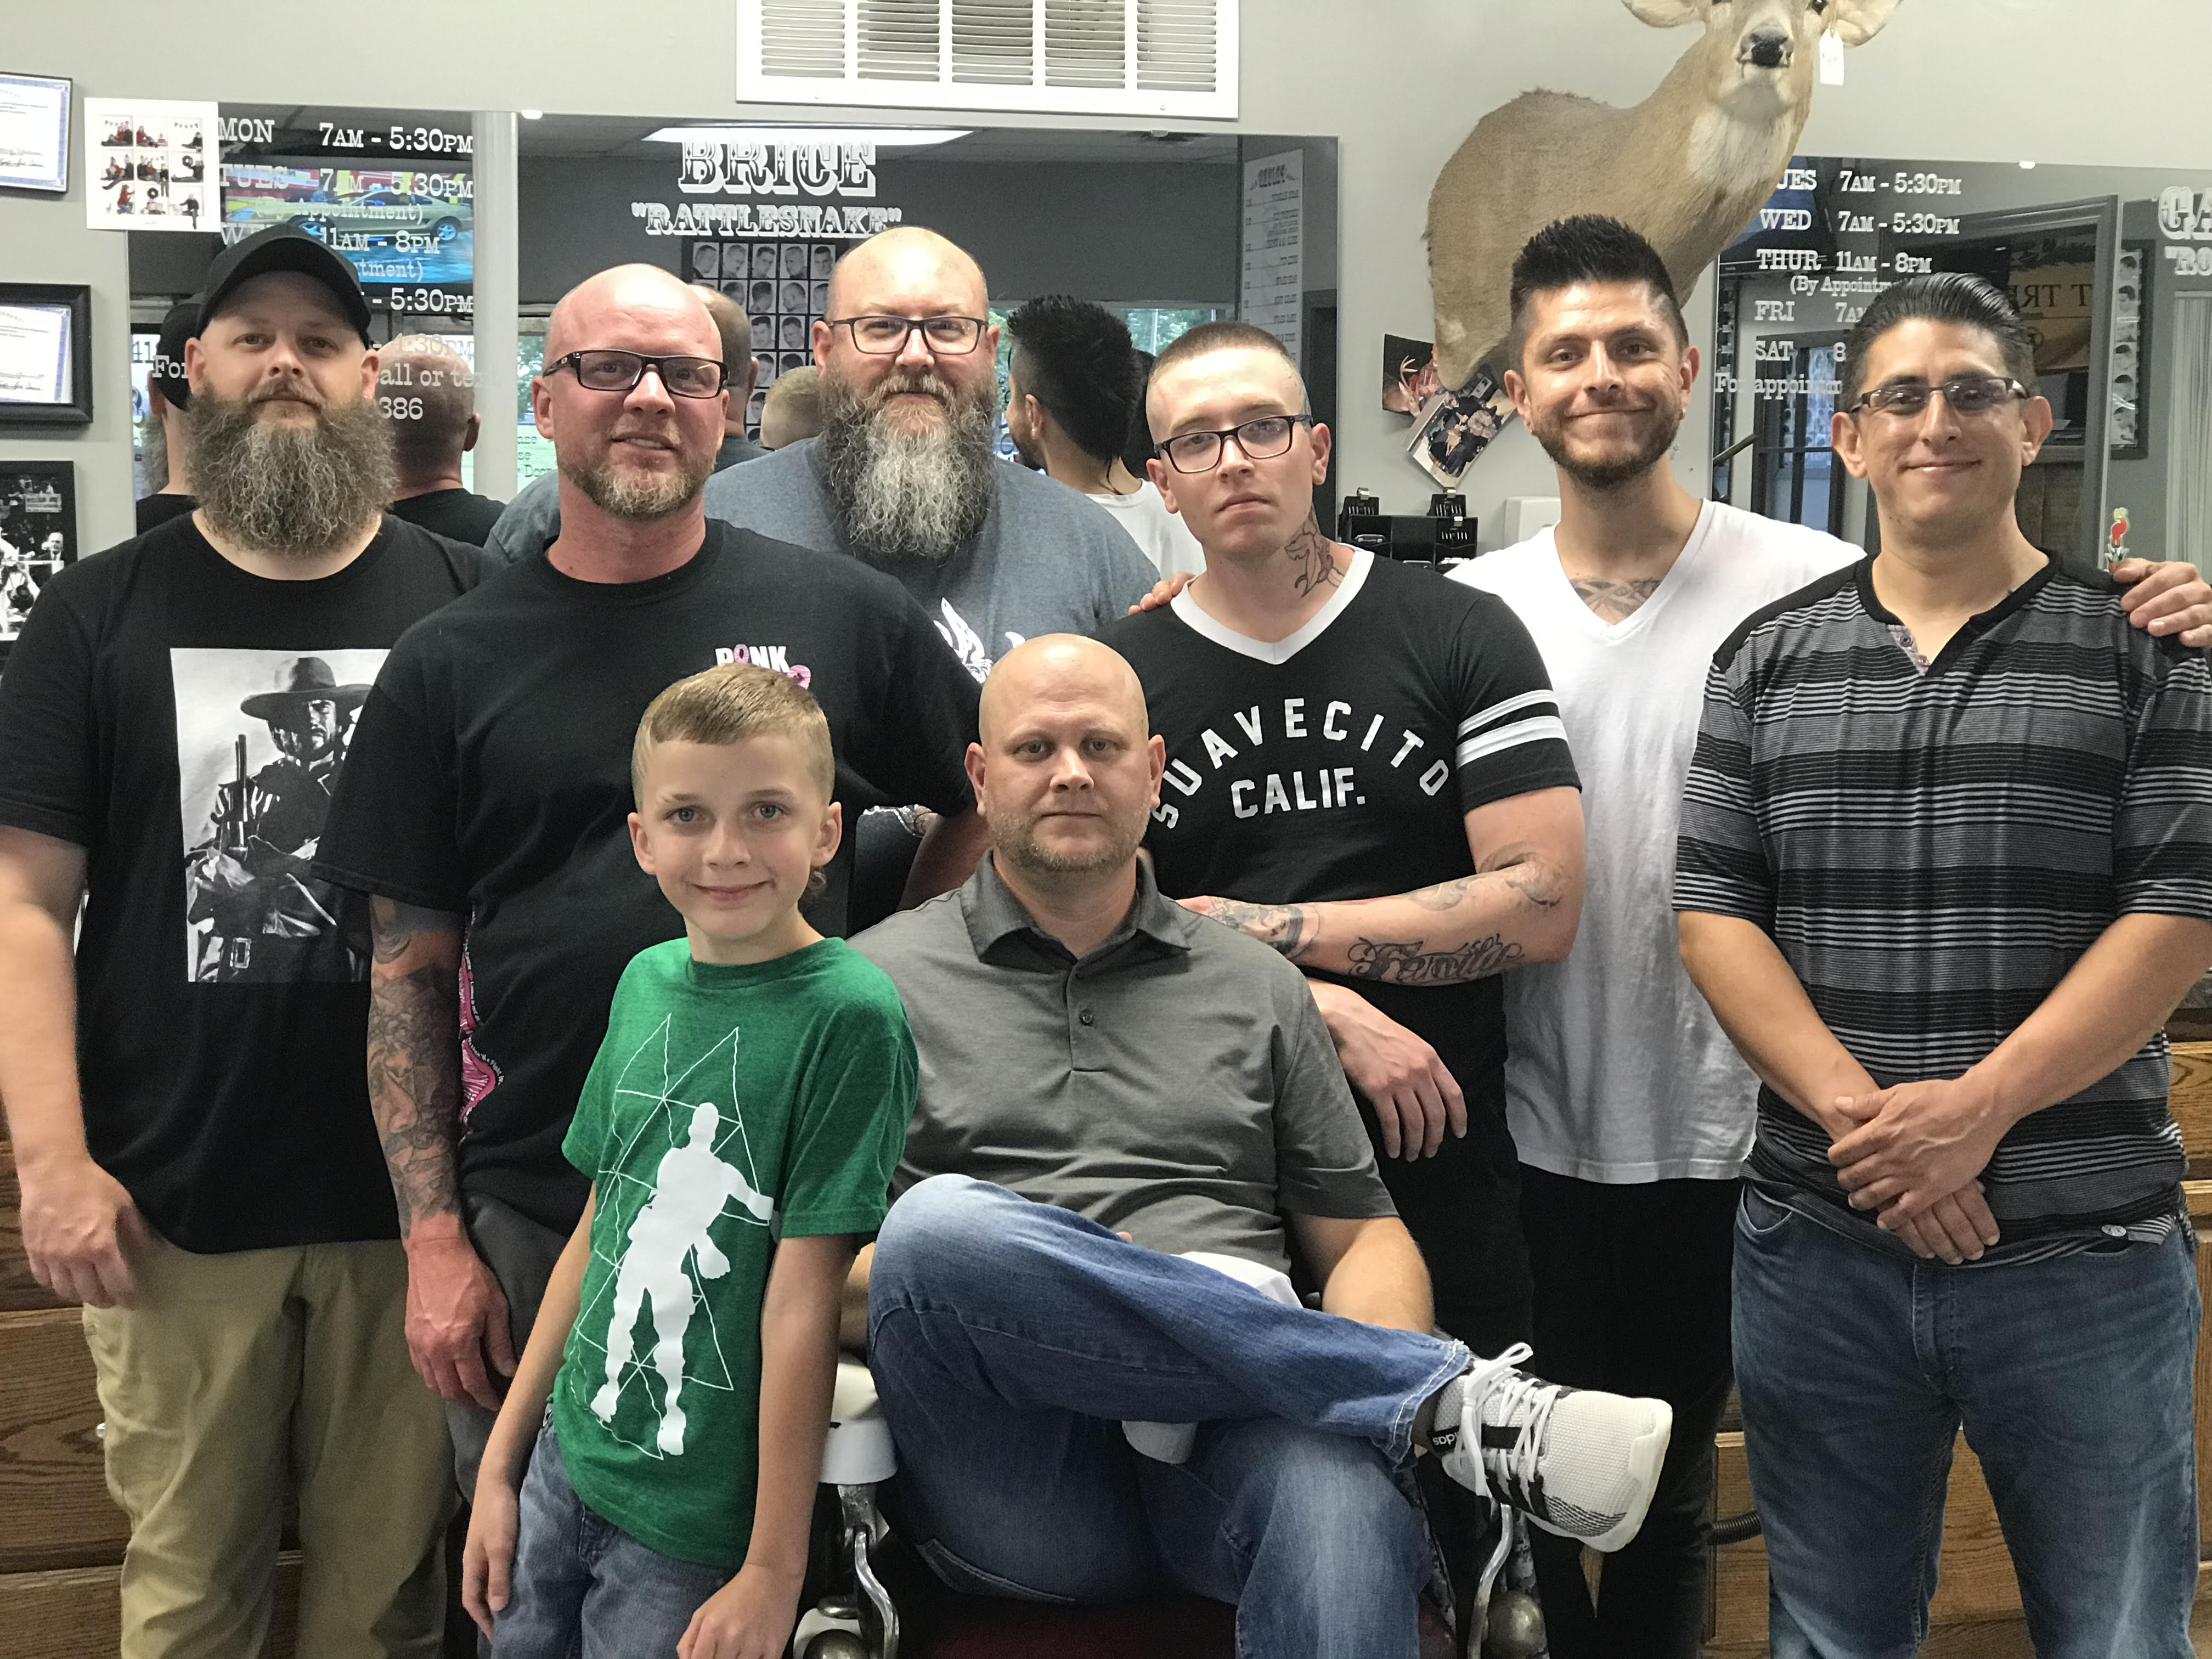 Missouri's Top Rated Local® Barber Shops Award Winner: Courtney